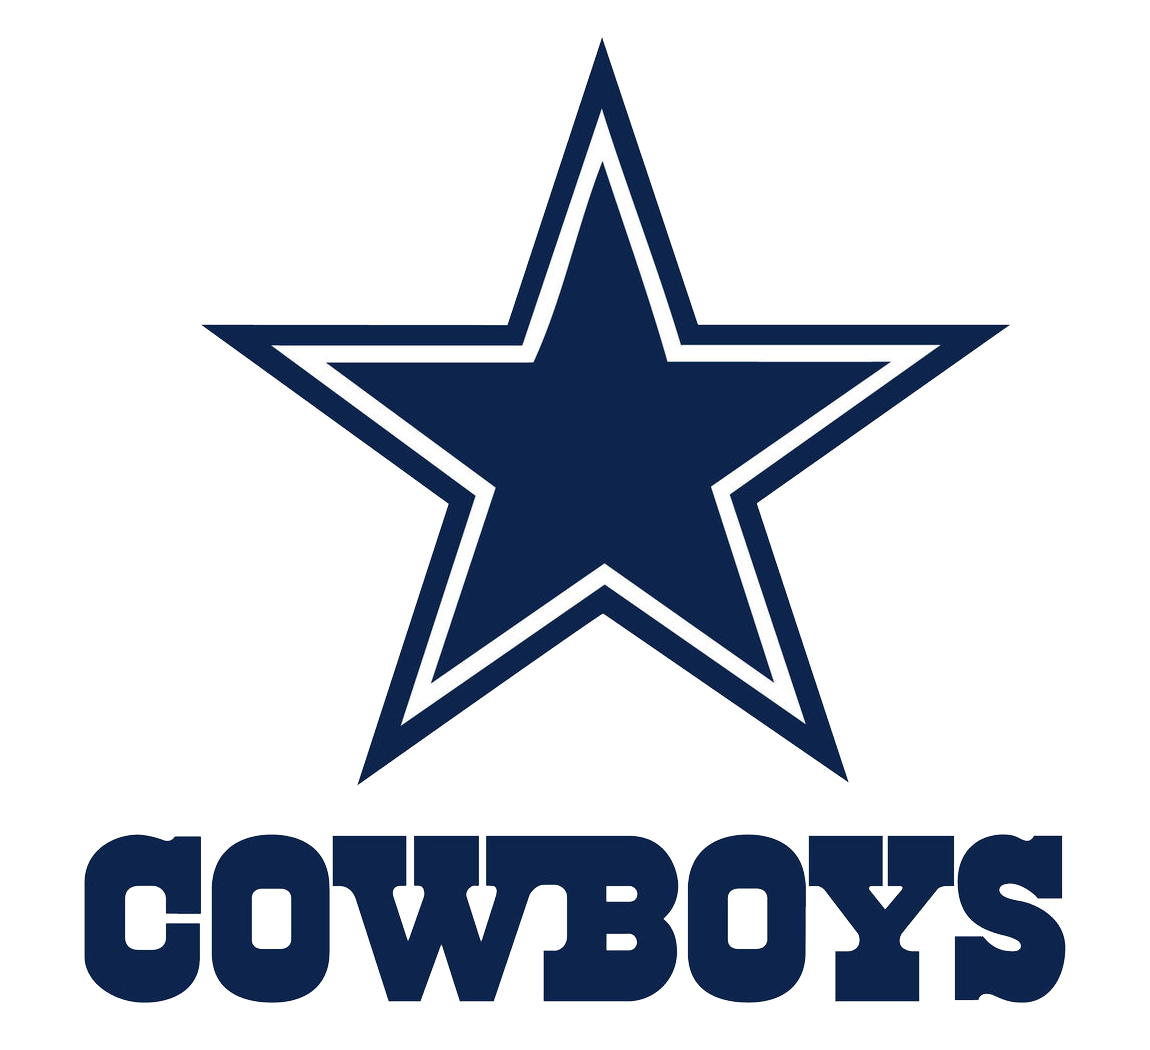 Dallas Cowboys.png